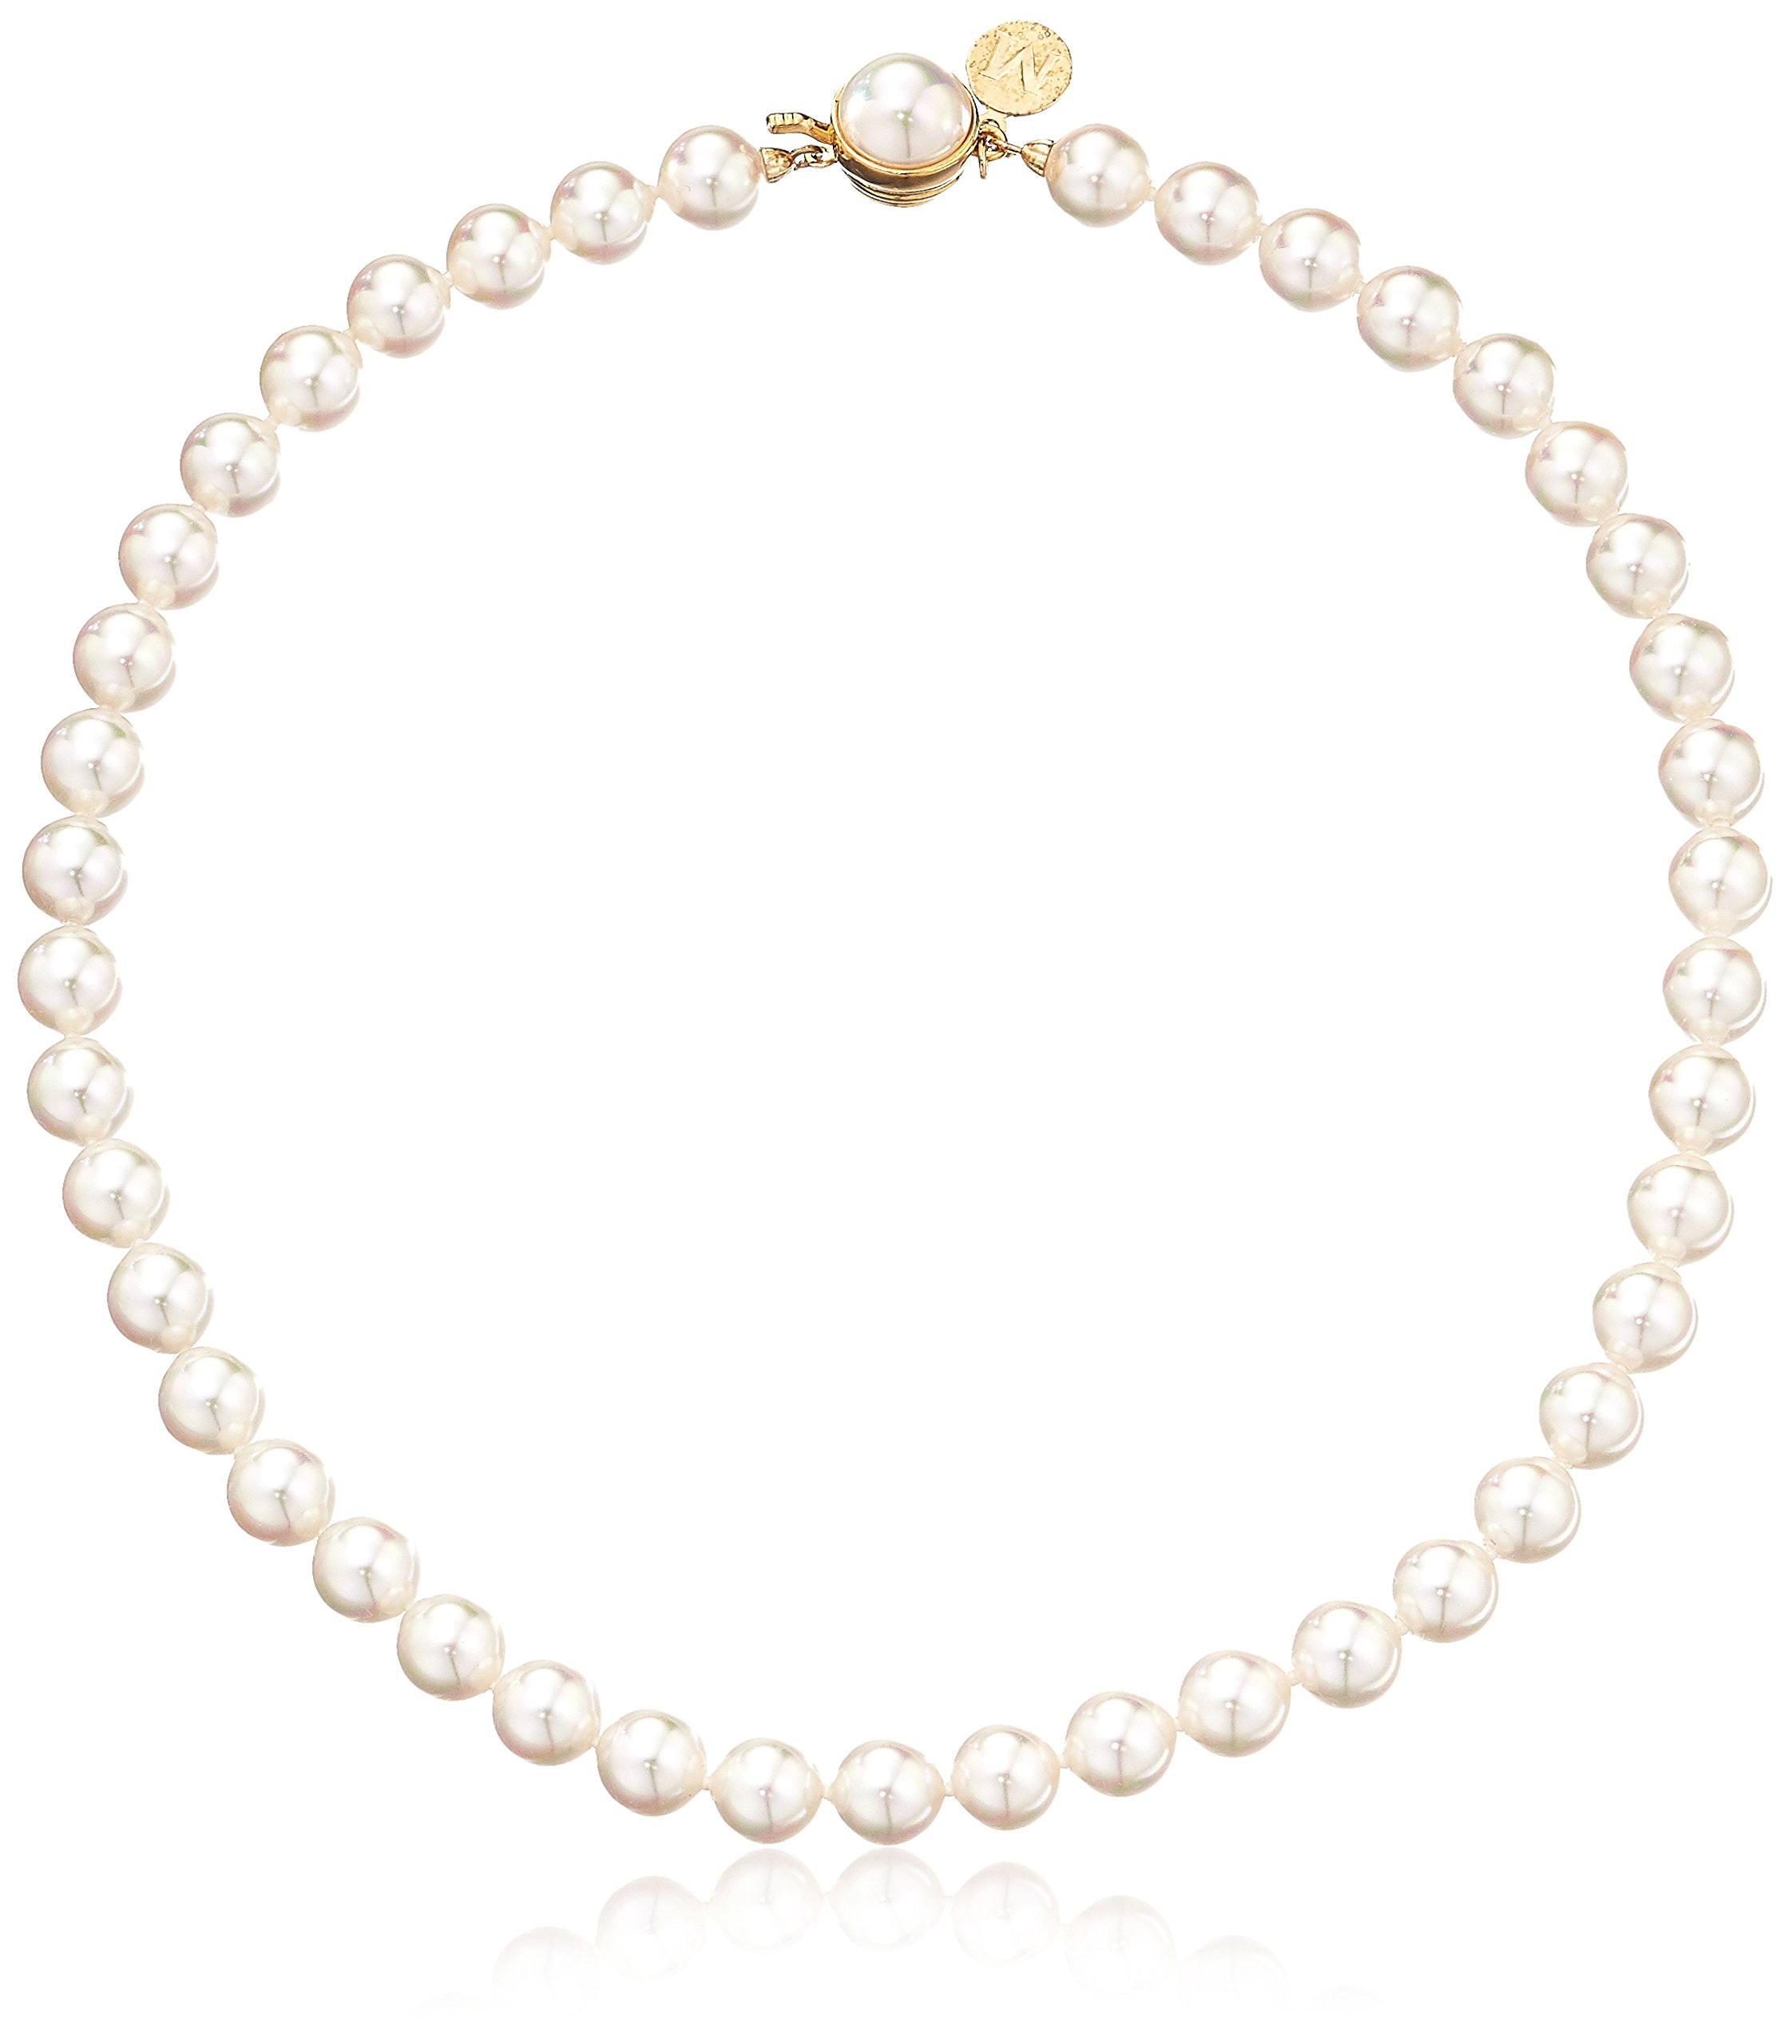 Majorica 1 Row White 8mm Faux-Pearl Necklace, 16''